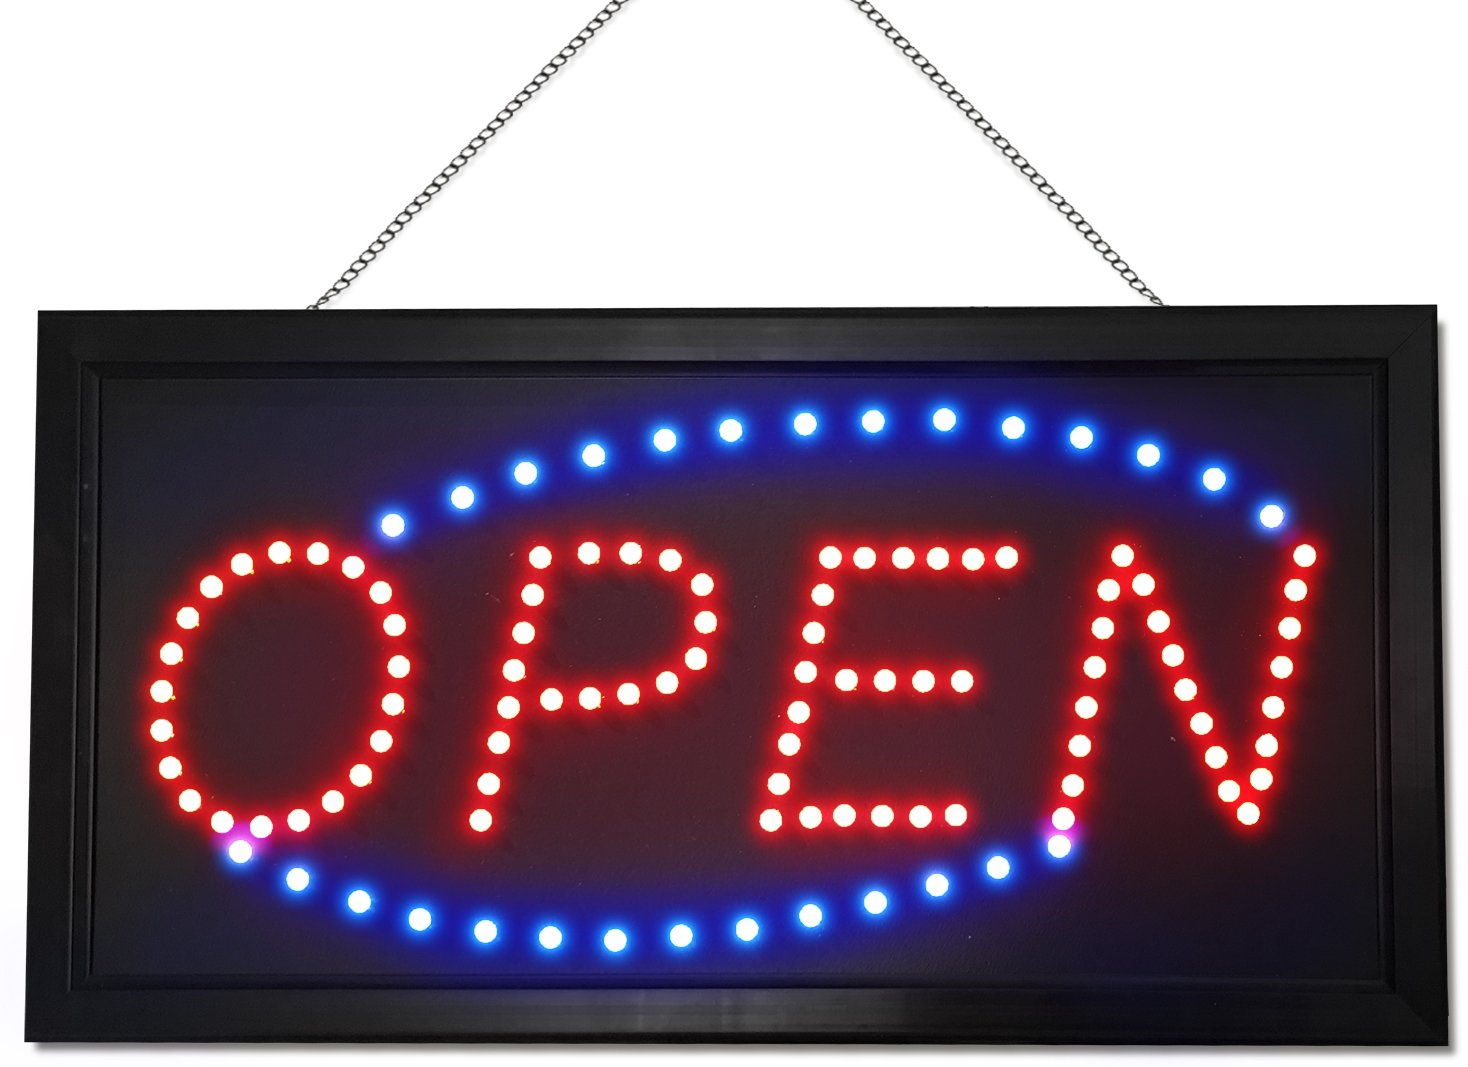 Neon Style LED Open Sign - Red / Blue Lights - Extended Power Cord - 2 Modes - Flashing / Steady Motion - Sturdy Chain - Best Signs for Business or Office - Perfect for Man Cave or Home Bar Decor